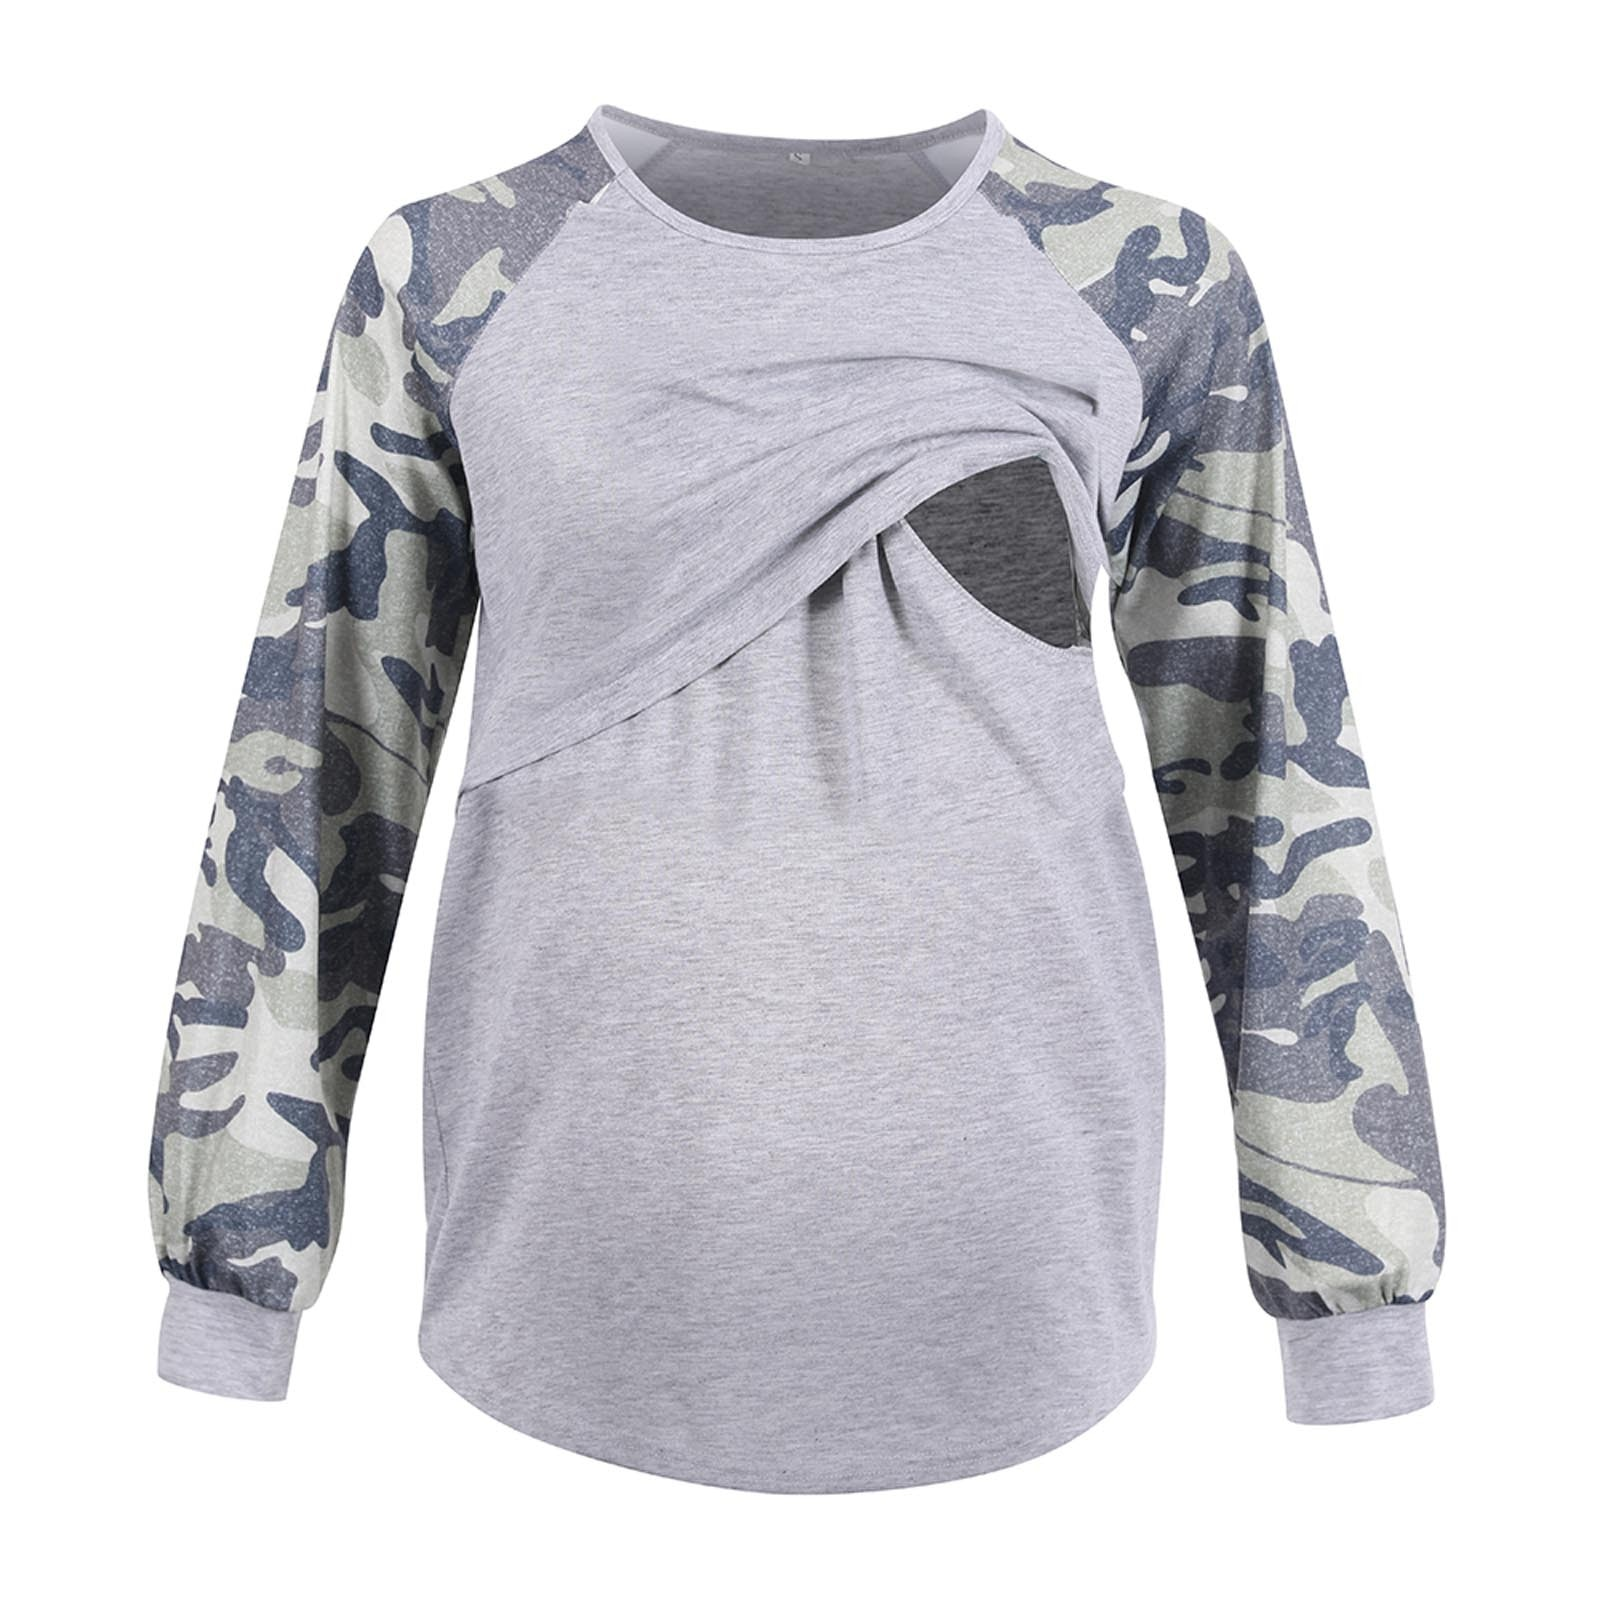 Pregnancy T Shirt Spring And Autumn Color Matching Shoulder Sleeves Breastfeeding T-Shirt Long Sleeve Loose S-XXl Maternity Tops